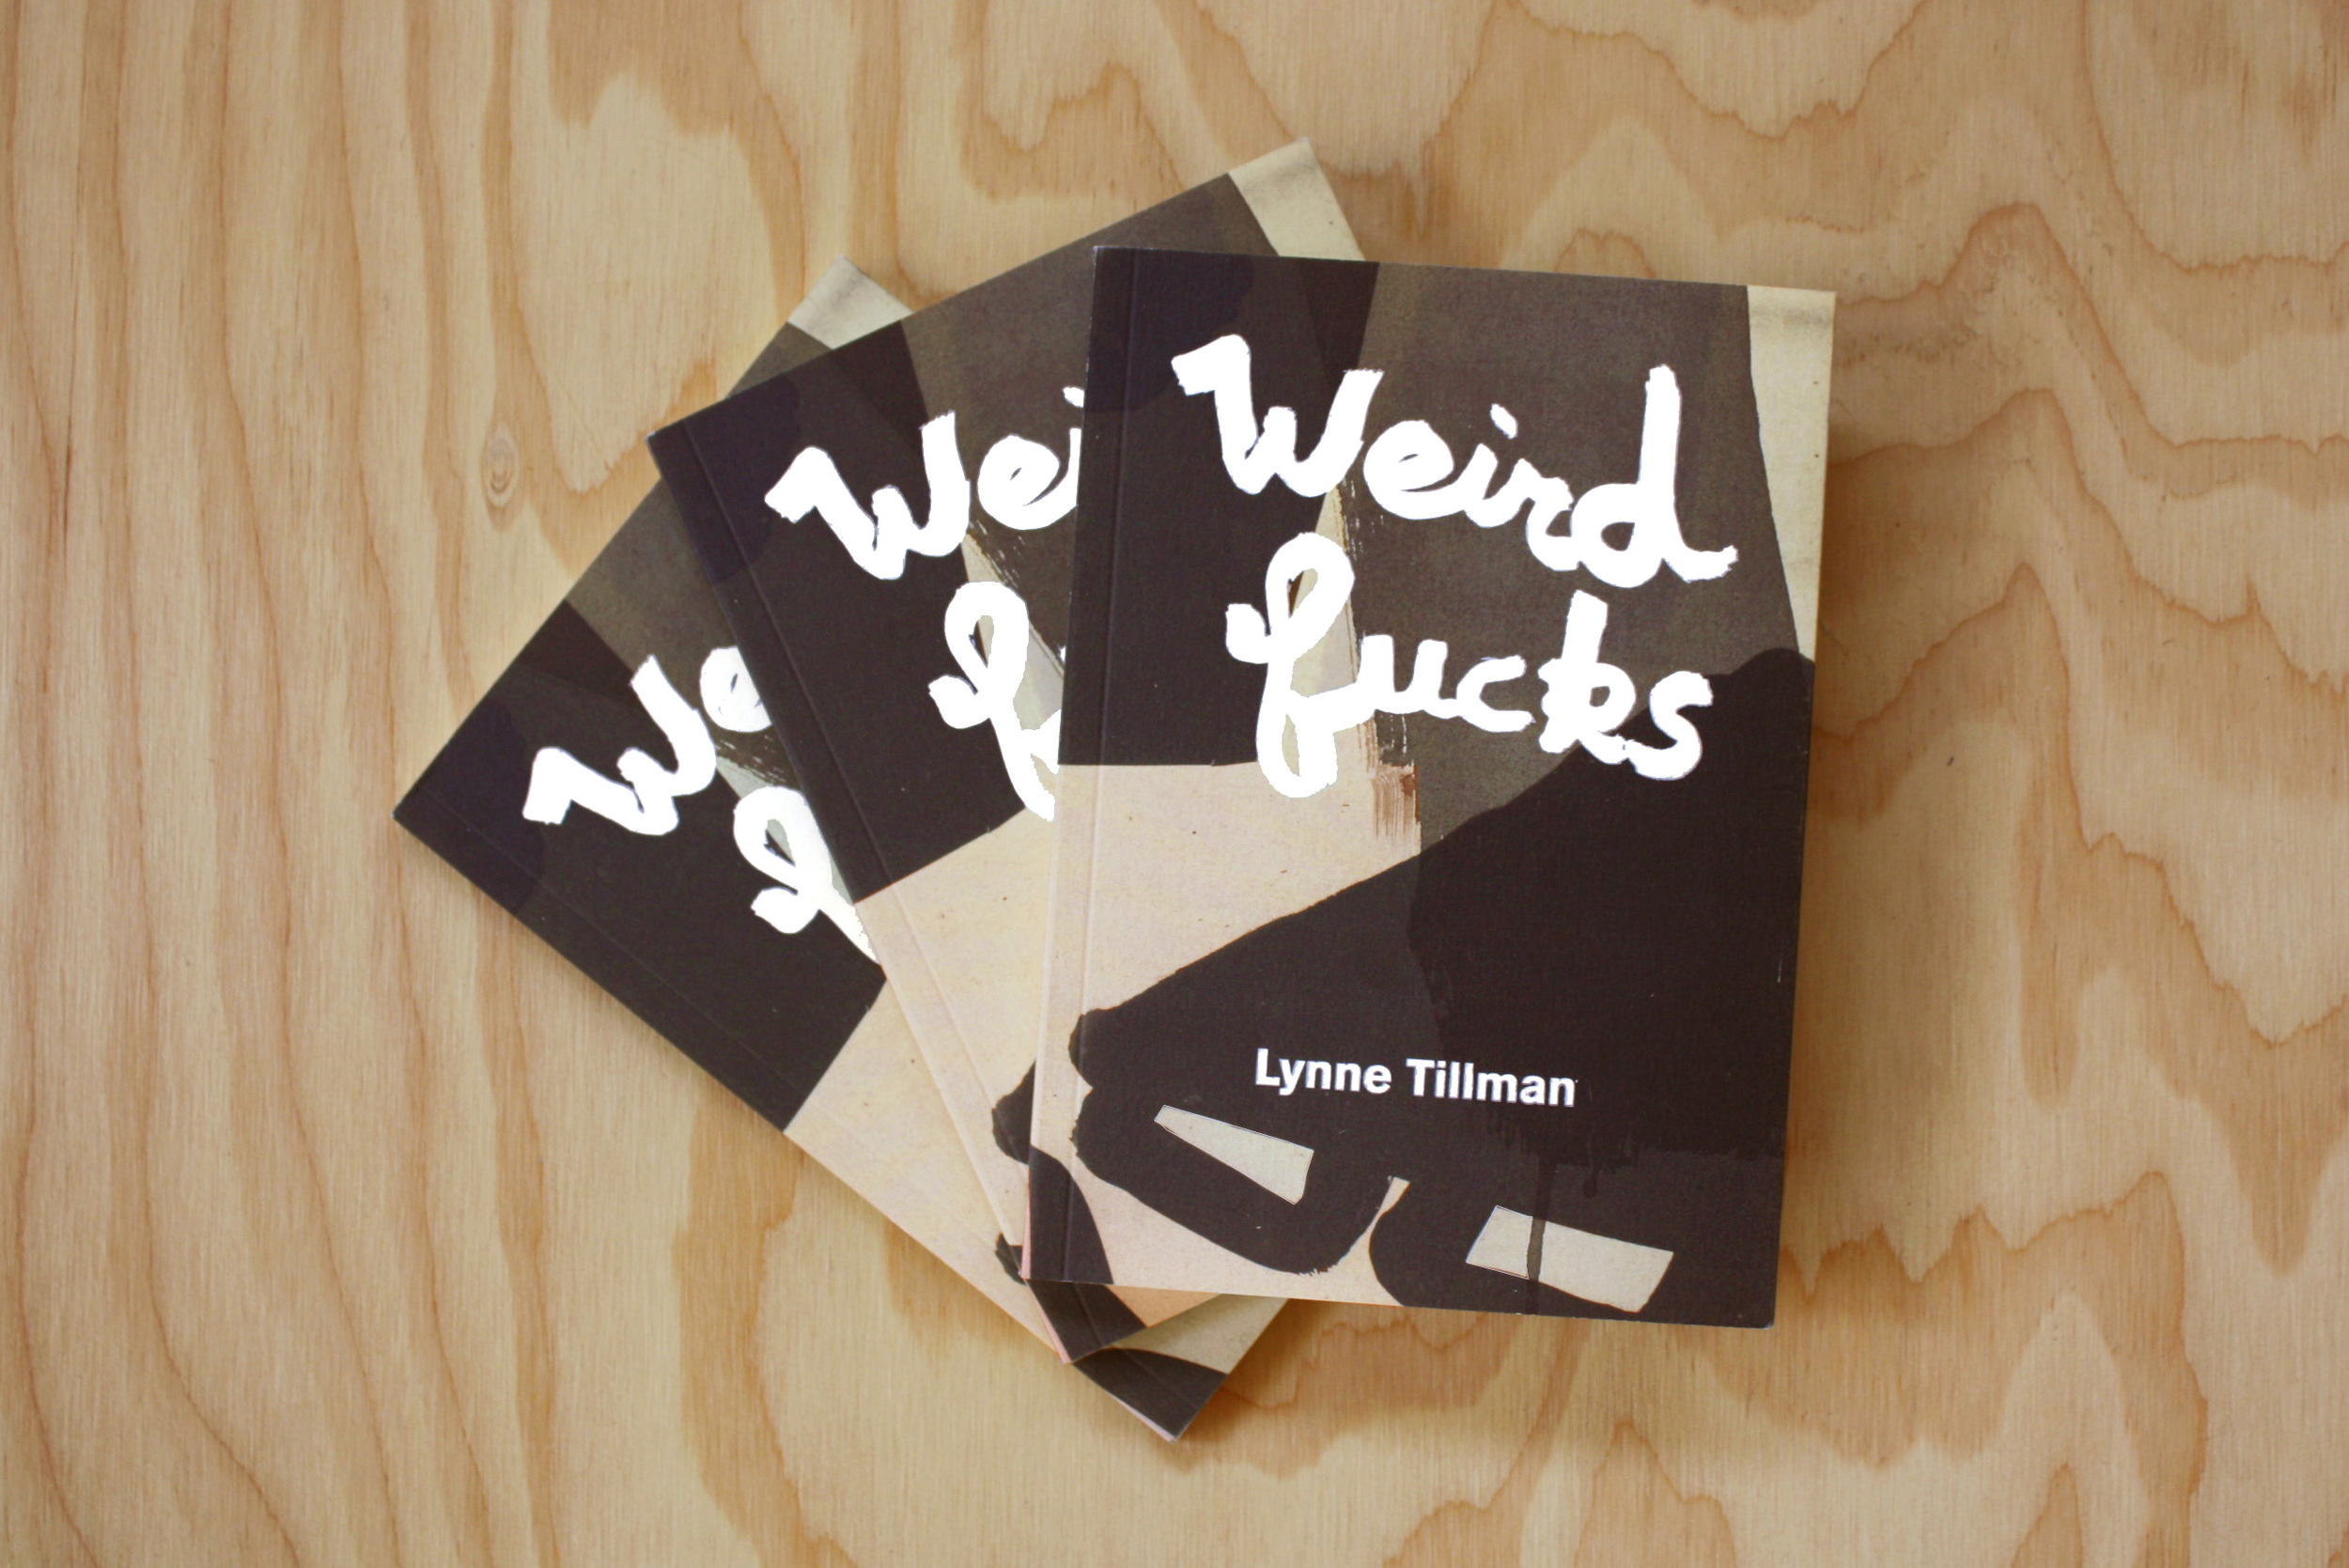 Weird Fucks by Lynne Tillman